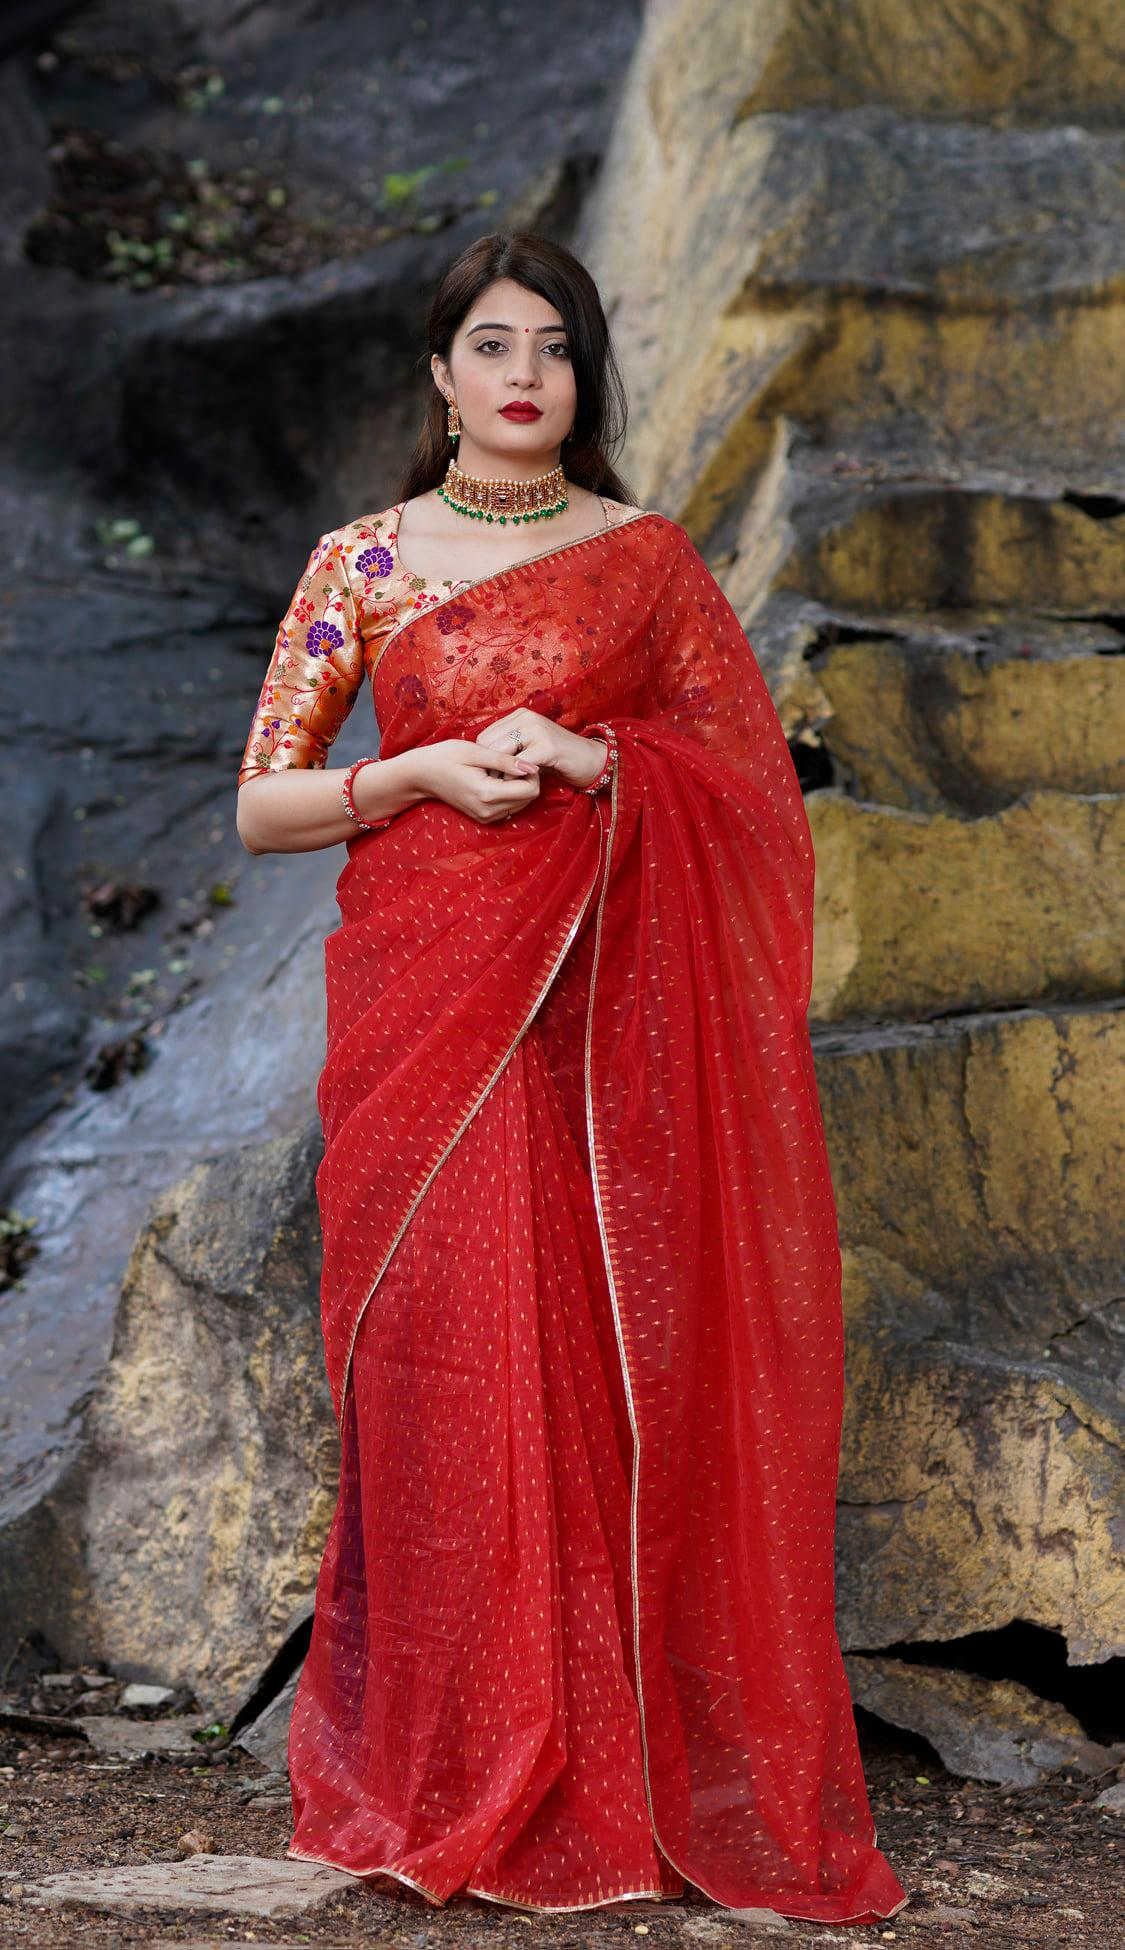 Red organza. Price - Rs 5000. Red zari buttis organza saree finished with a golden zari border. Unstitched blouse piece - Red golden paithani blouse piece. Please whatsapp for orders - 7995481918. Email - privacollective@gmail.com. 2021-10-20